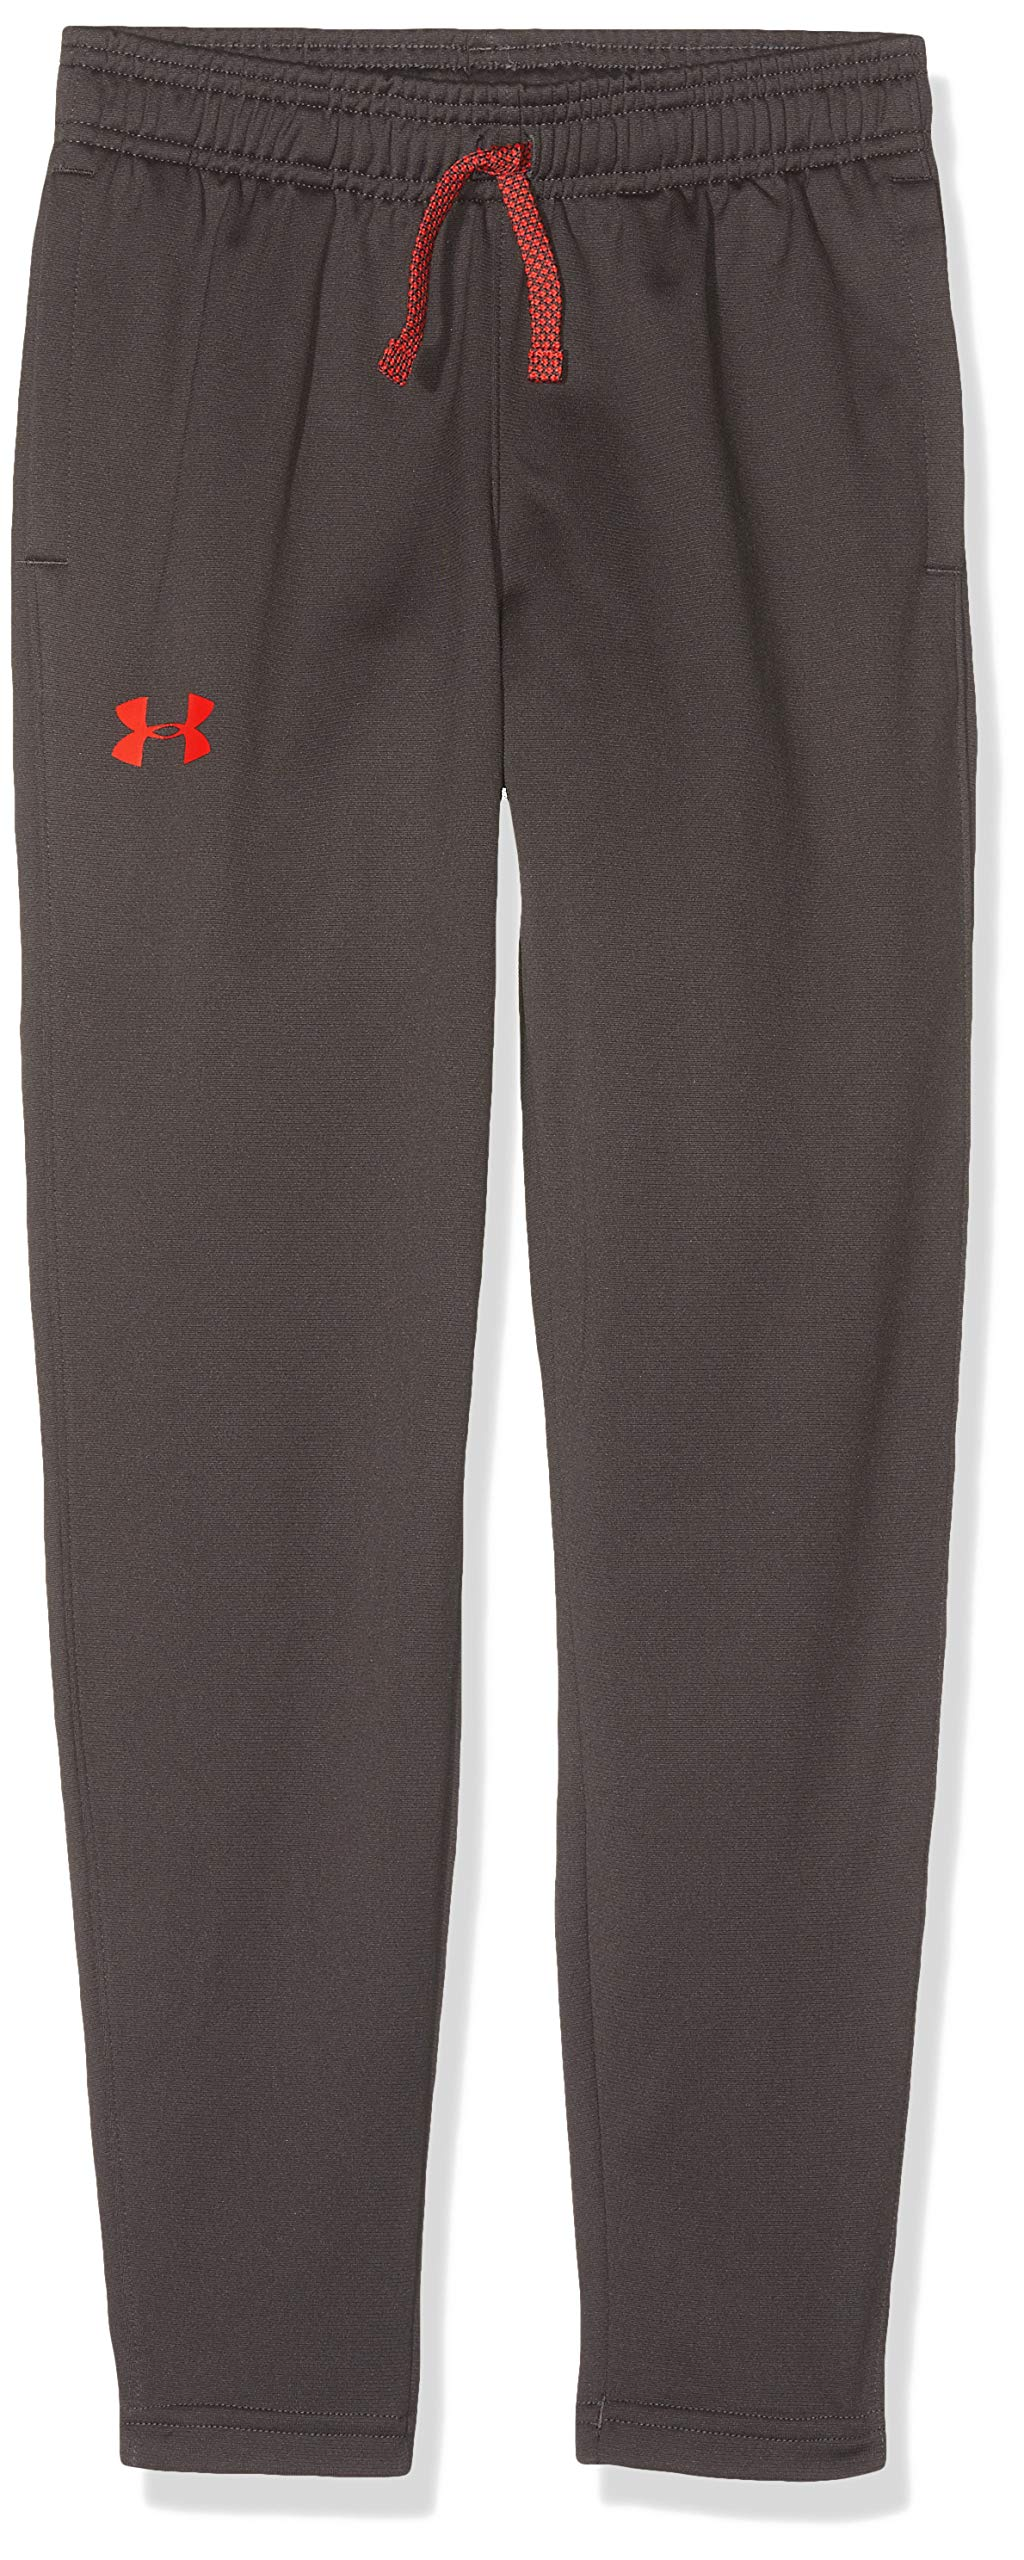 Under Armour Kids Boy's Brawler Tapered Pants (Big Kids) Charcoal/Radio Red Small by Under Armour